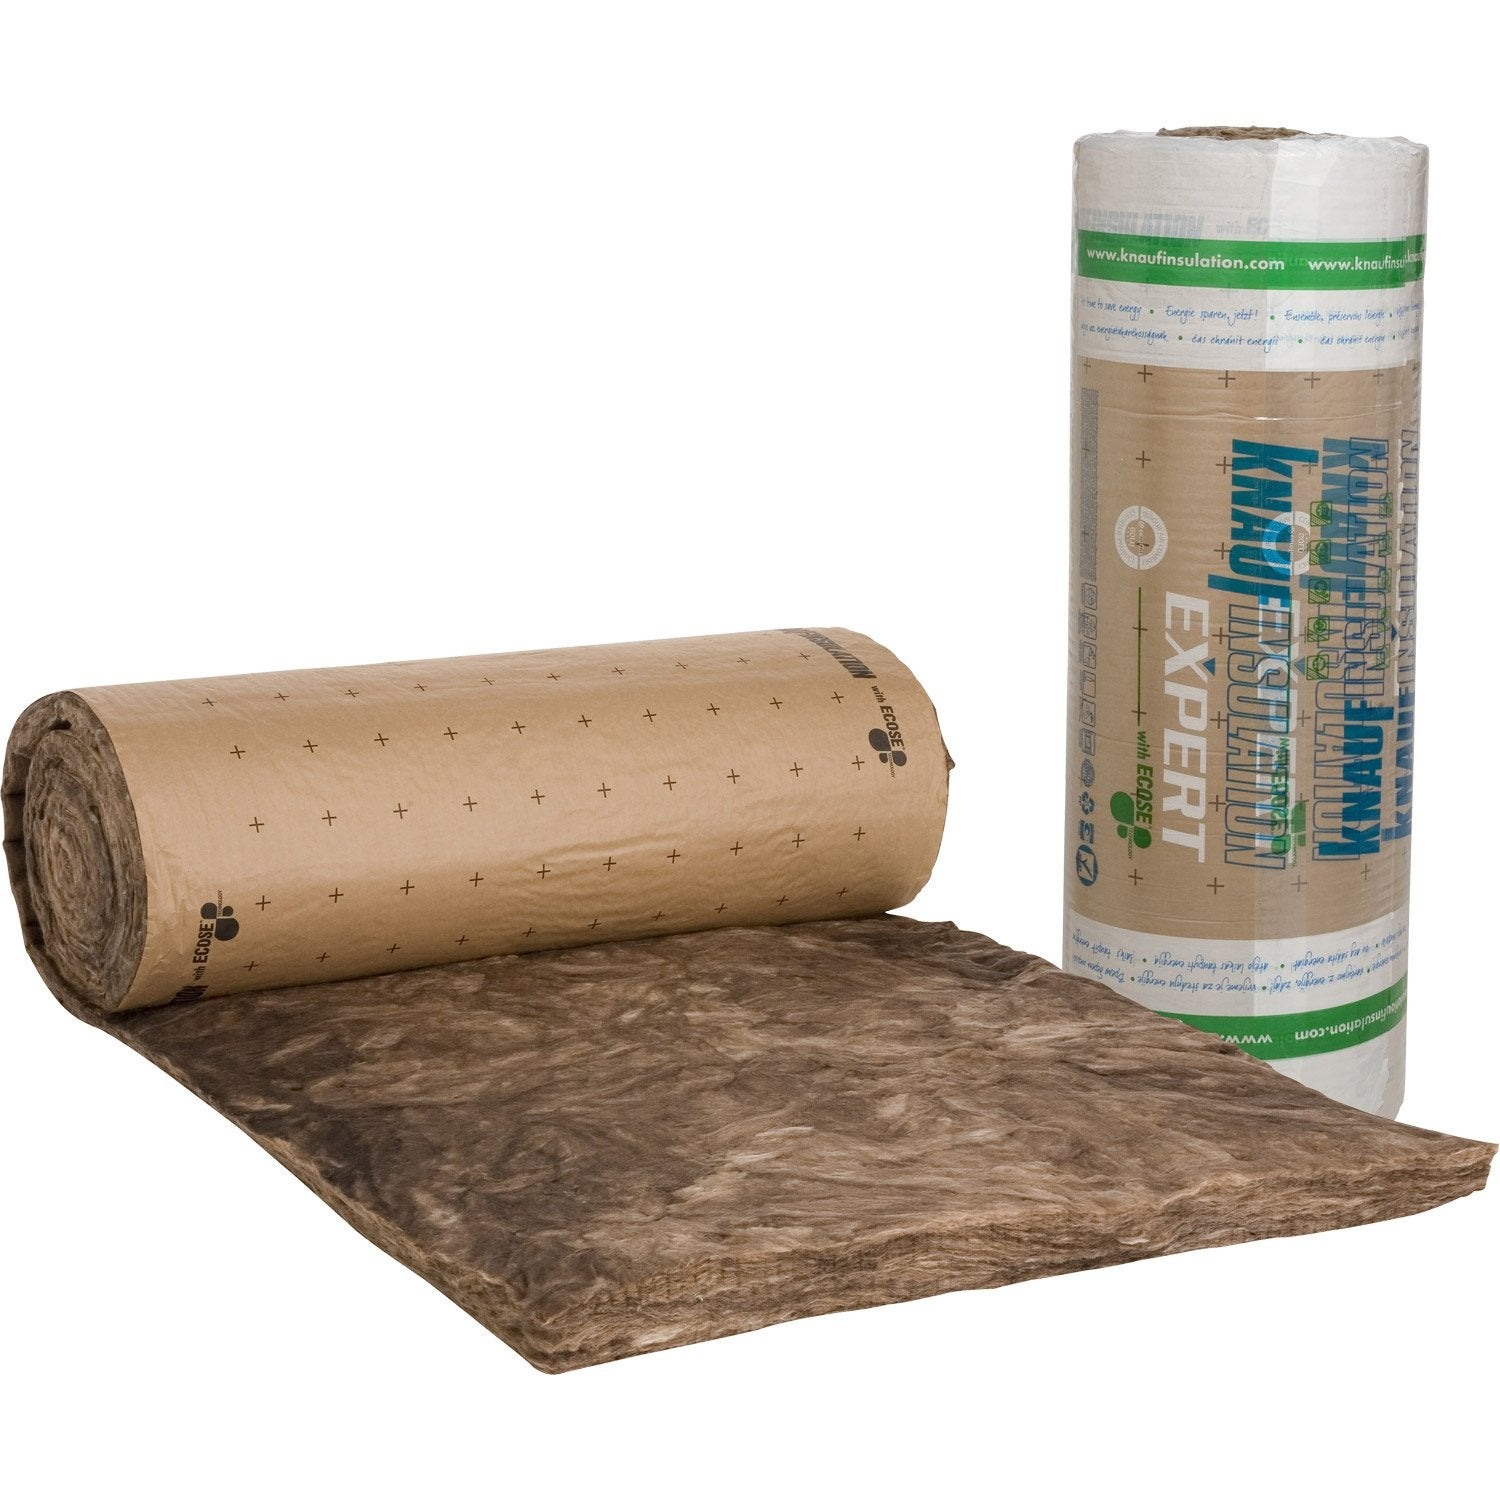 Laine de verre kraft knauf insulation 9 5 x 1 2 m ep 100 - Laine de verre isolation ...